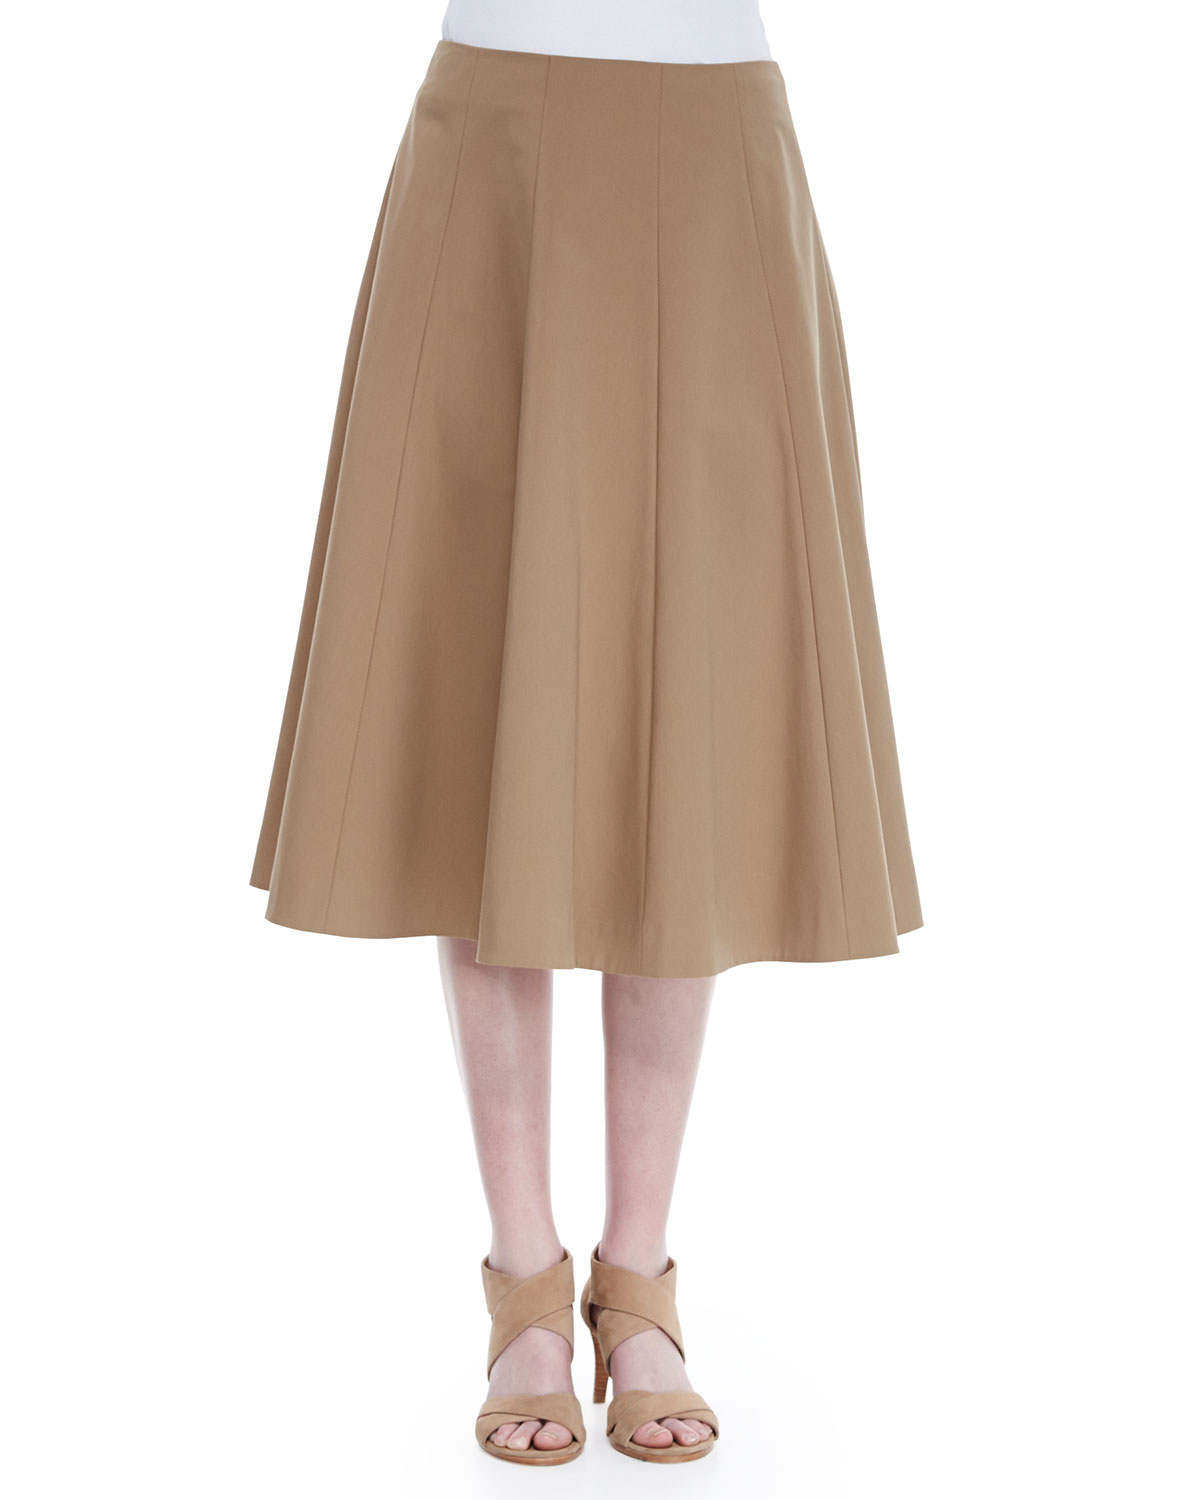 Lafayette 148 new york Nevada A-line Skirt in Natural | Lyst